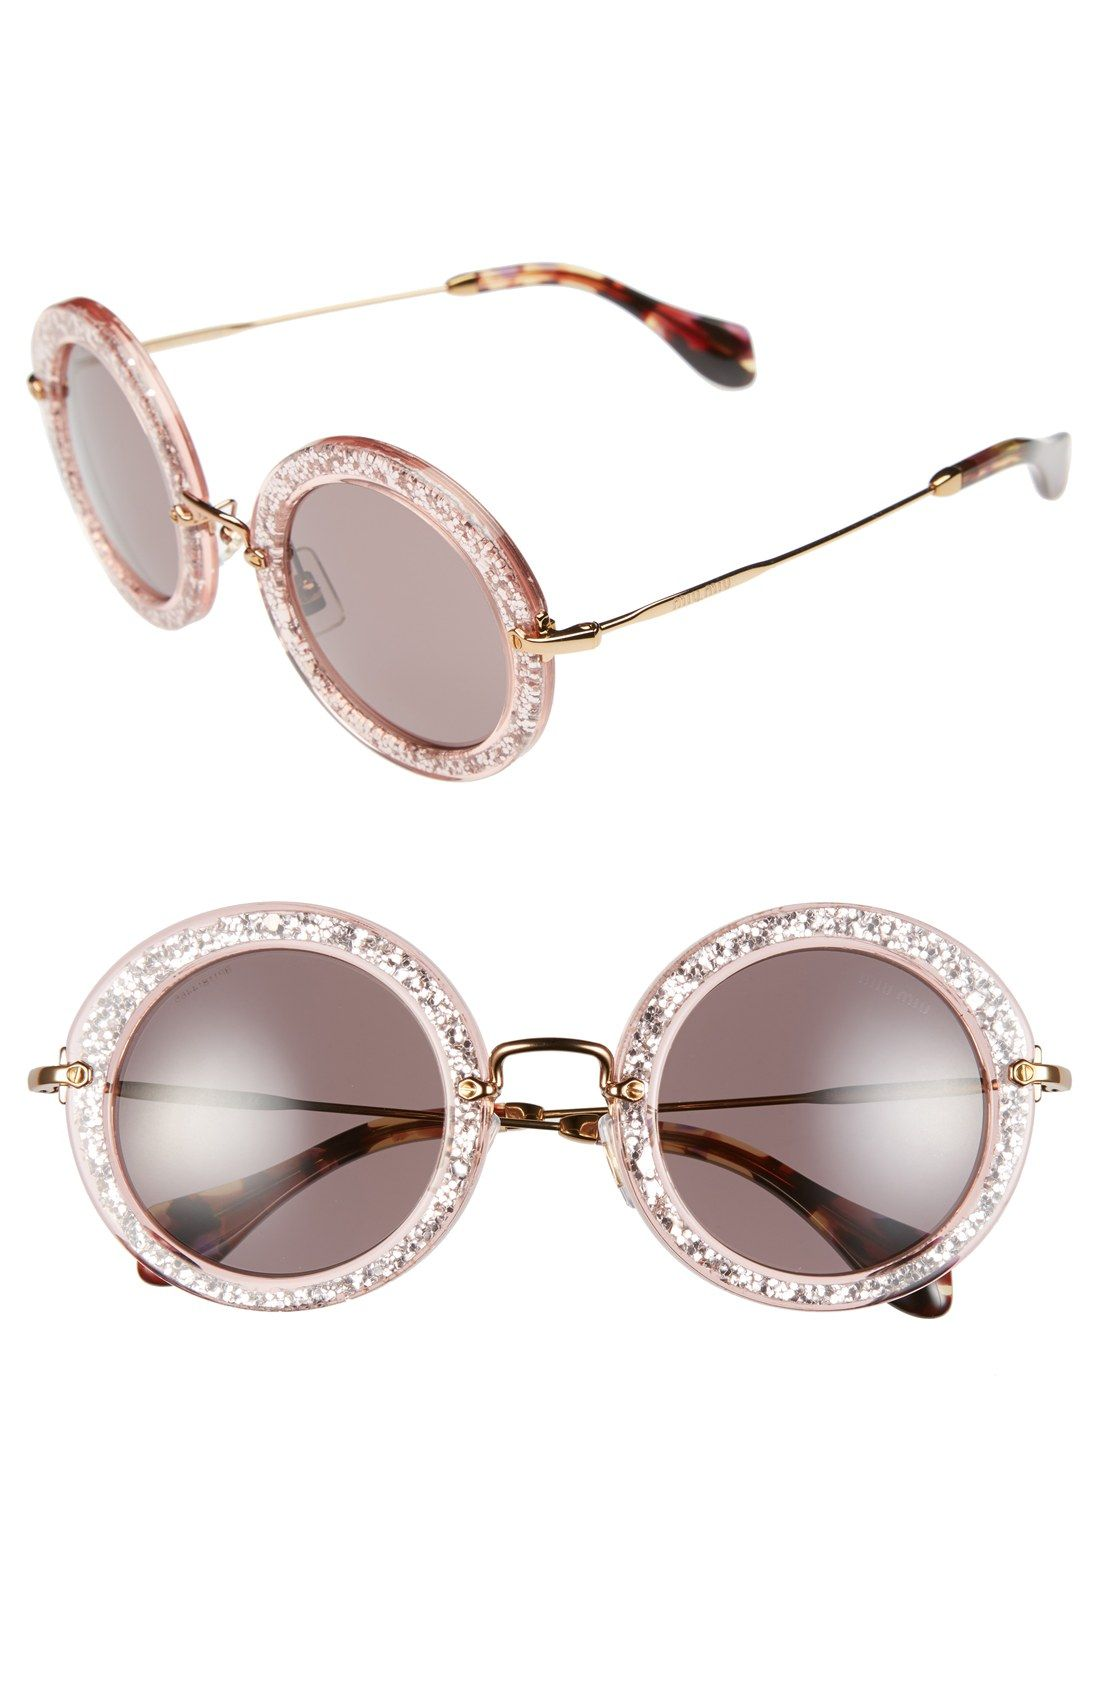 223e370653 These pink glitter Miu Miu round sunglasses are on the wish list ...